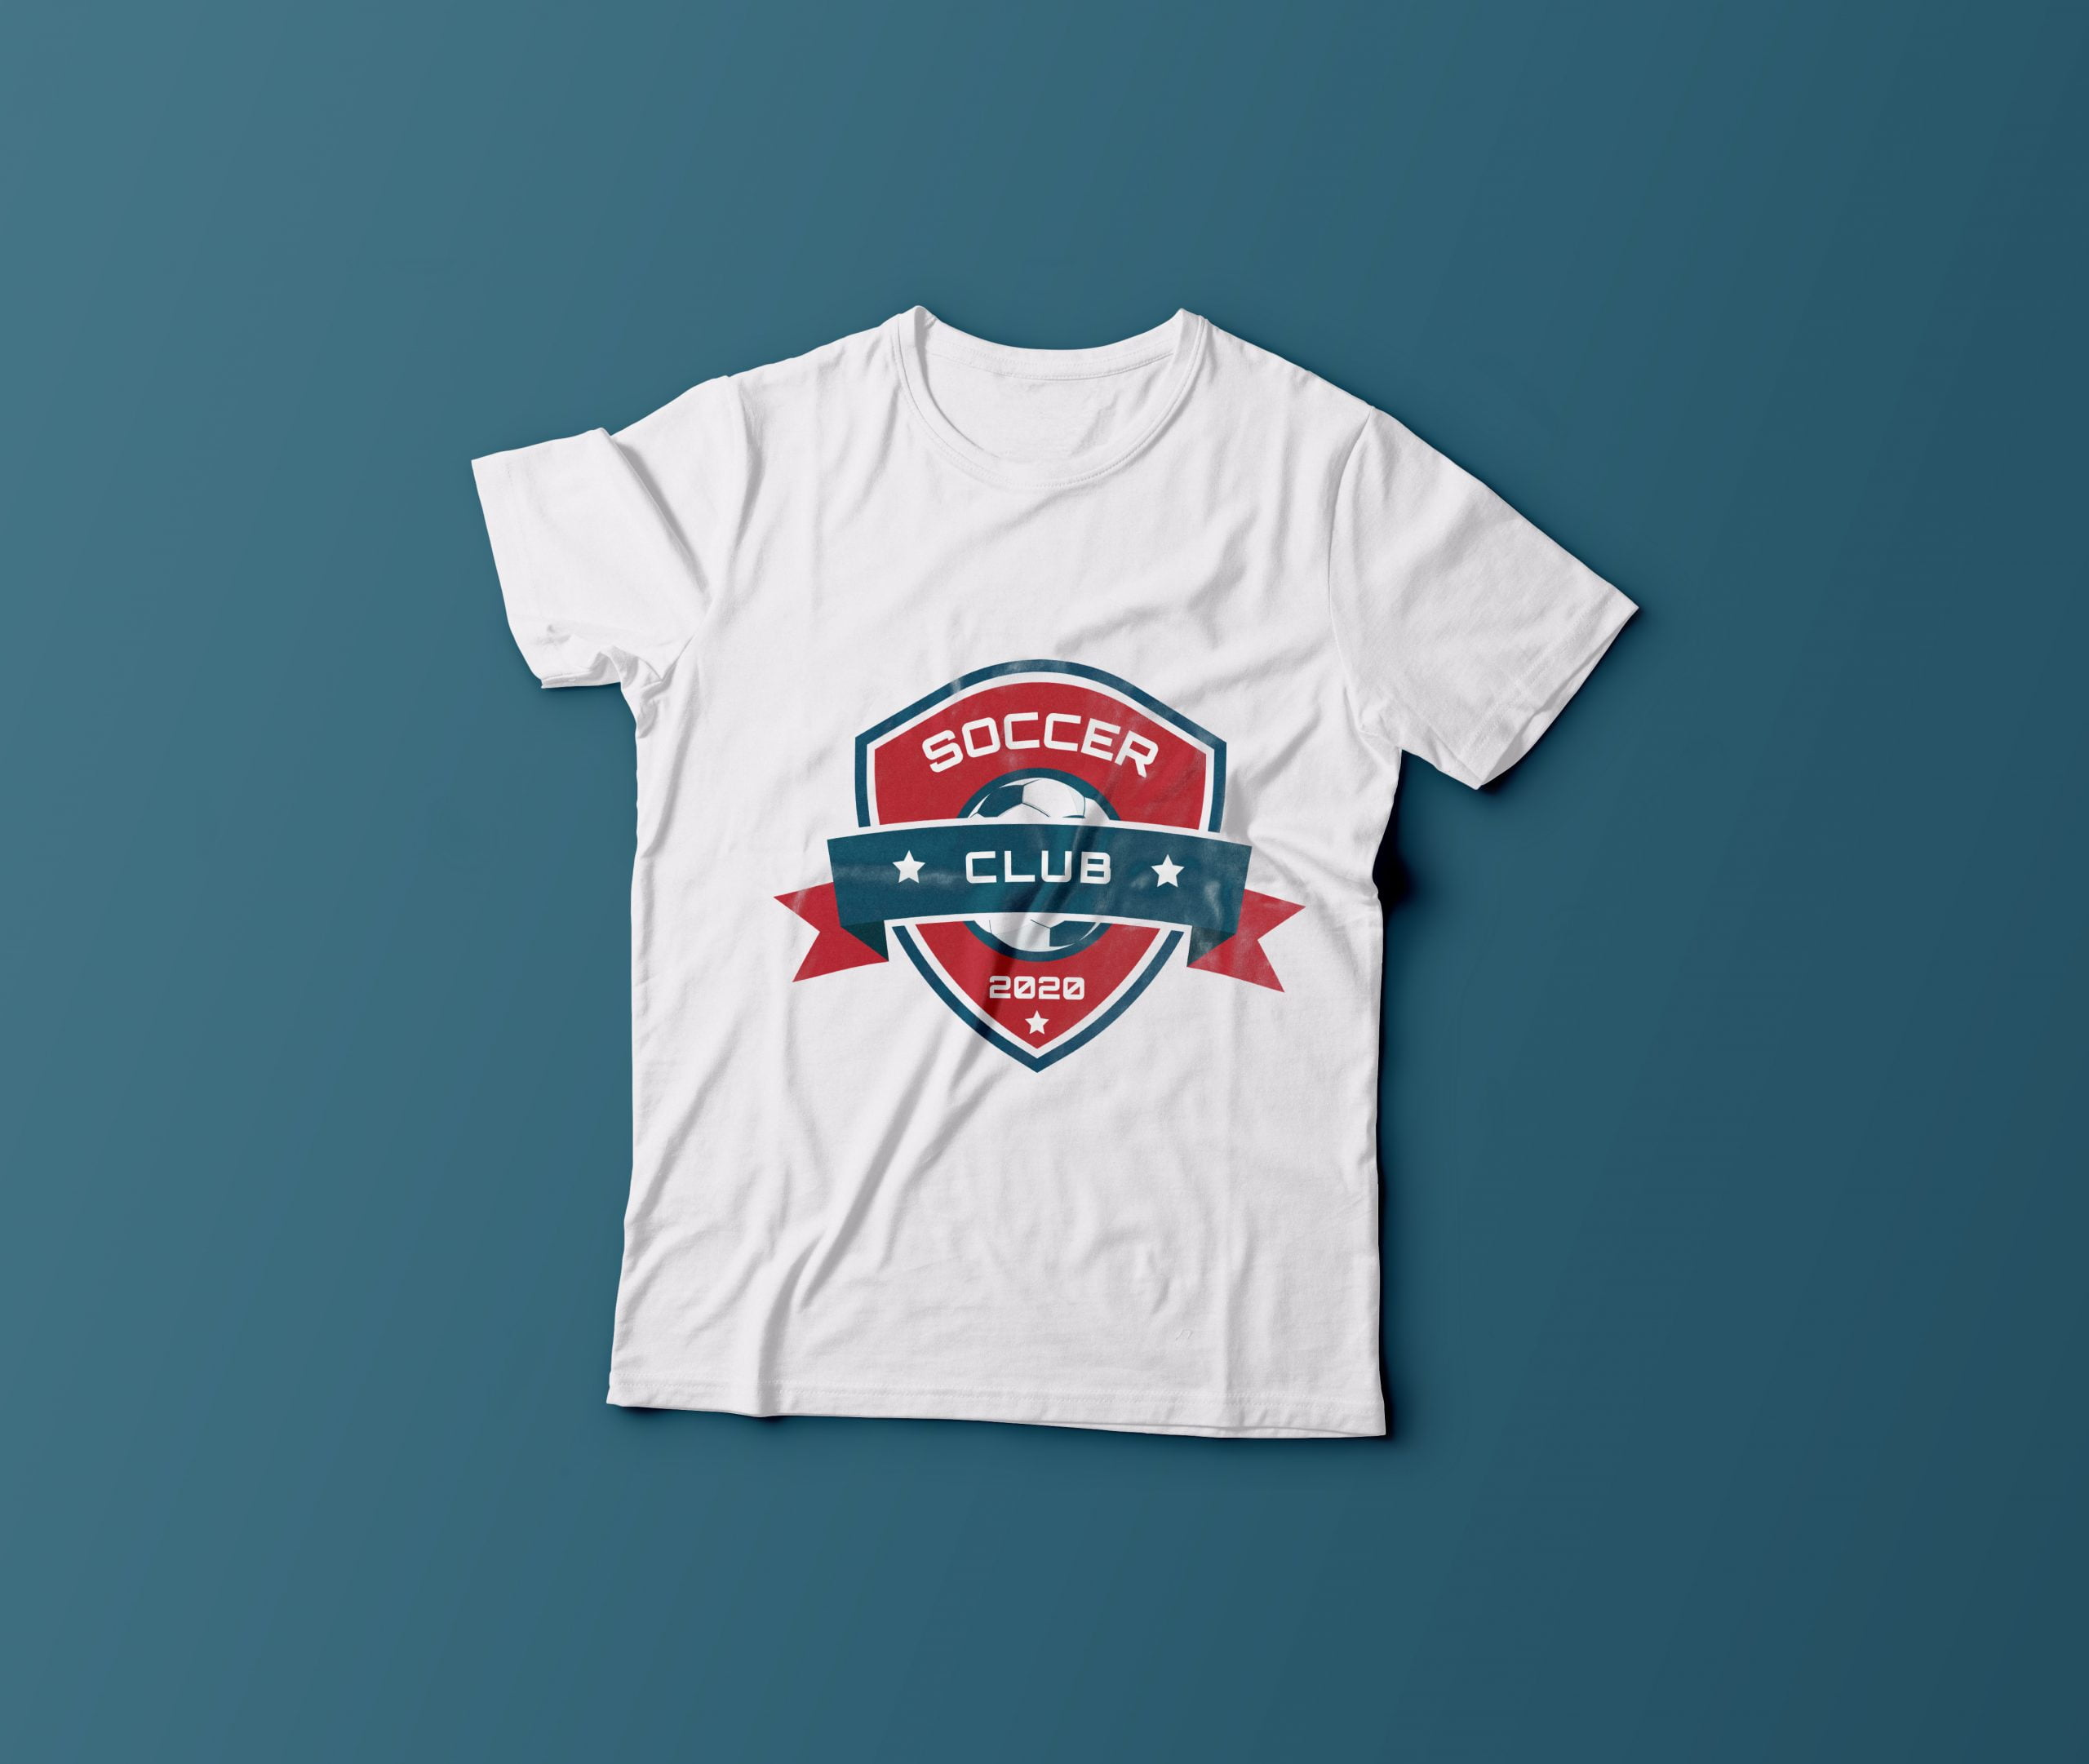 SPORTS LOGO ON TSHIRT